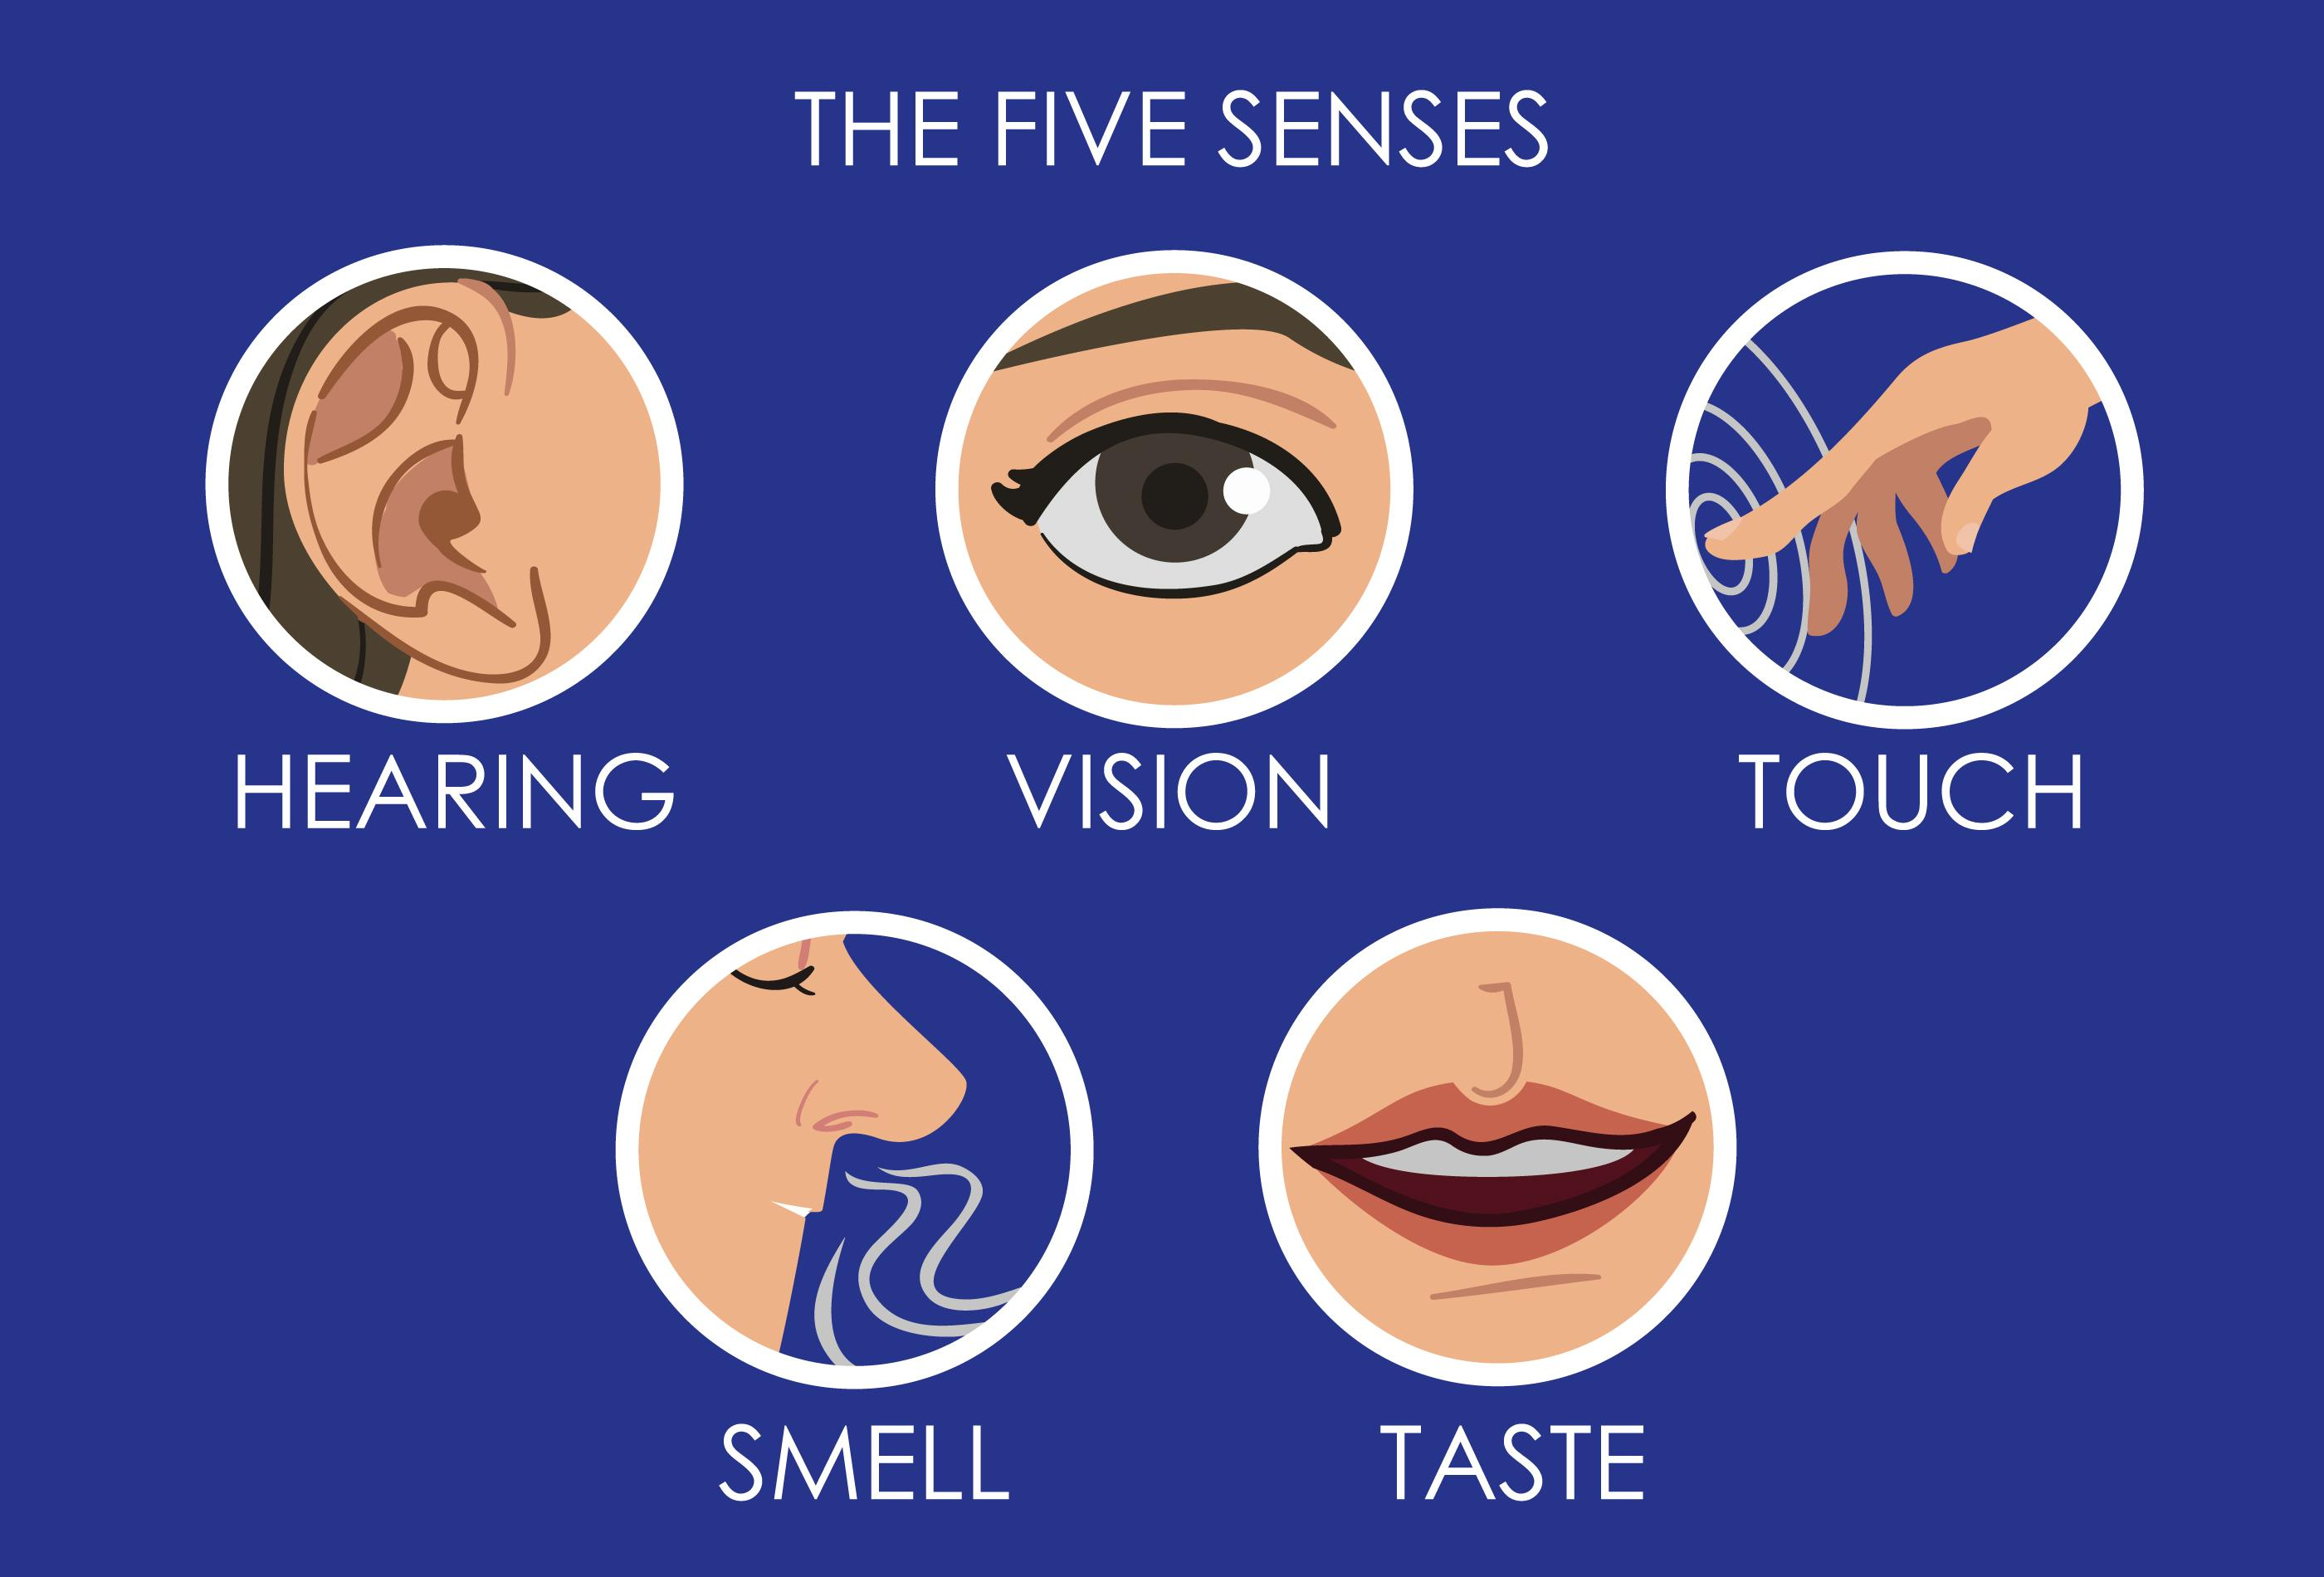 What Are The Five Senses And What Do They Do